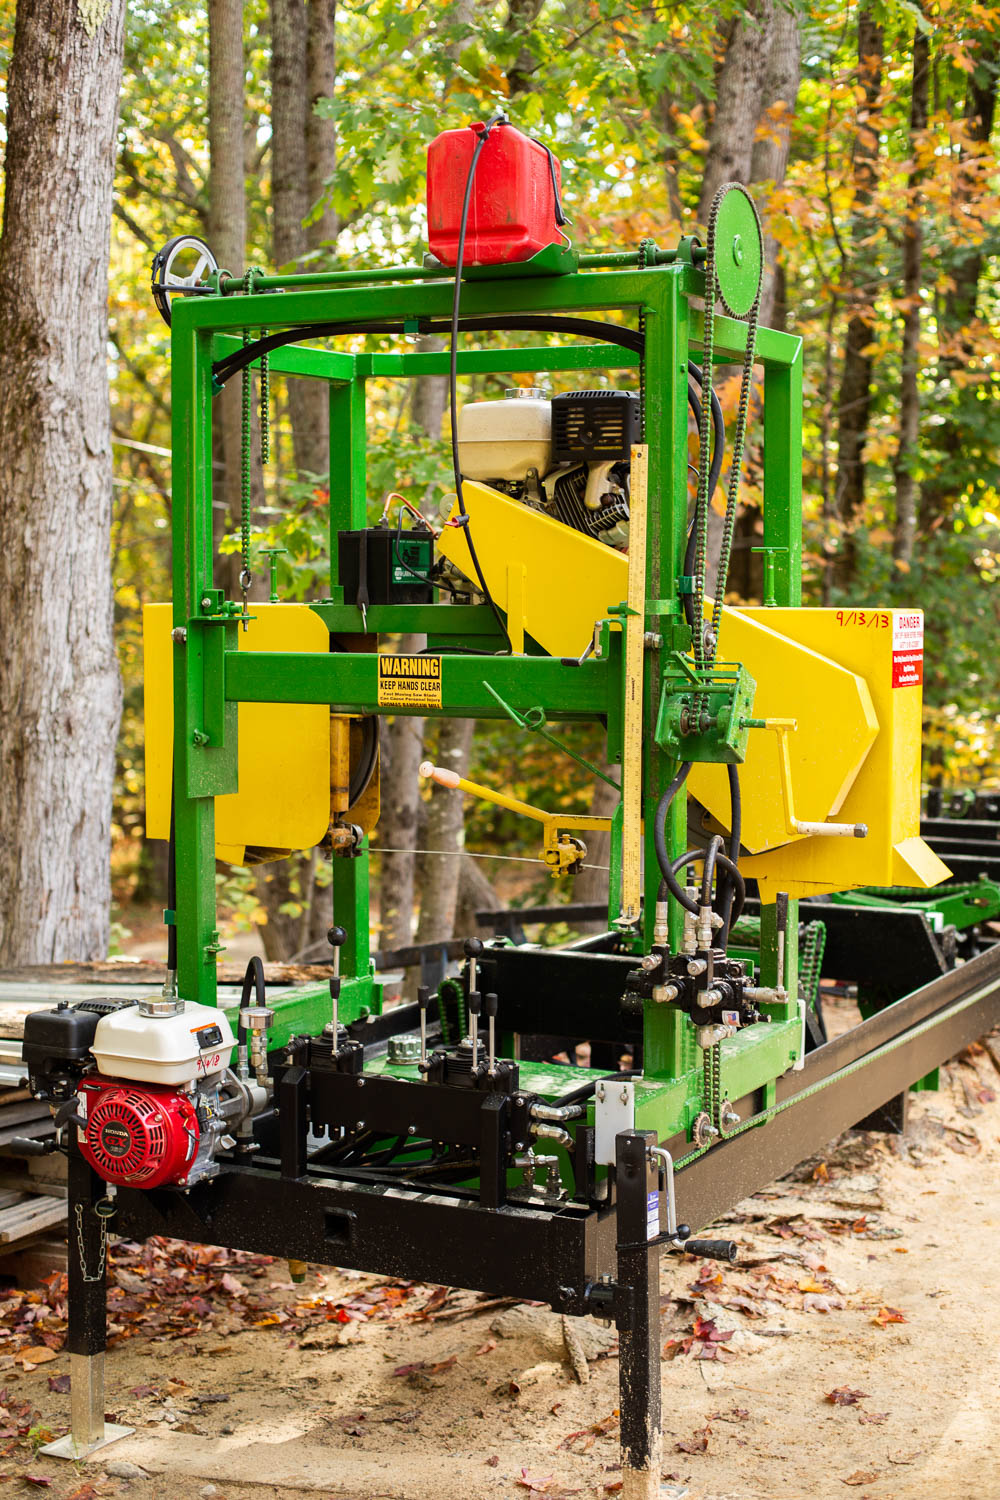 Designed and Fabricated Hydraulic Log Handling Functions to Existing Sawmill